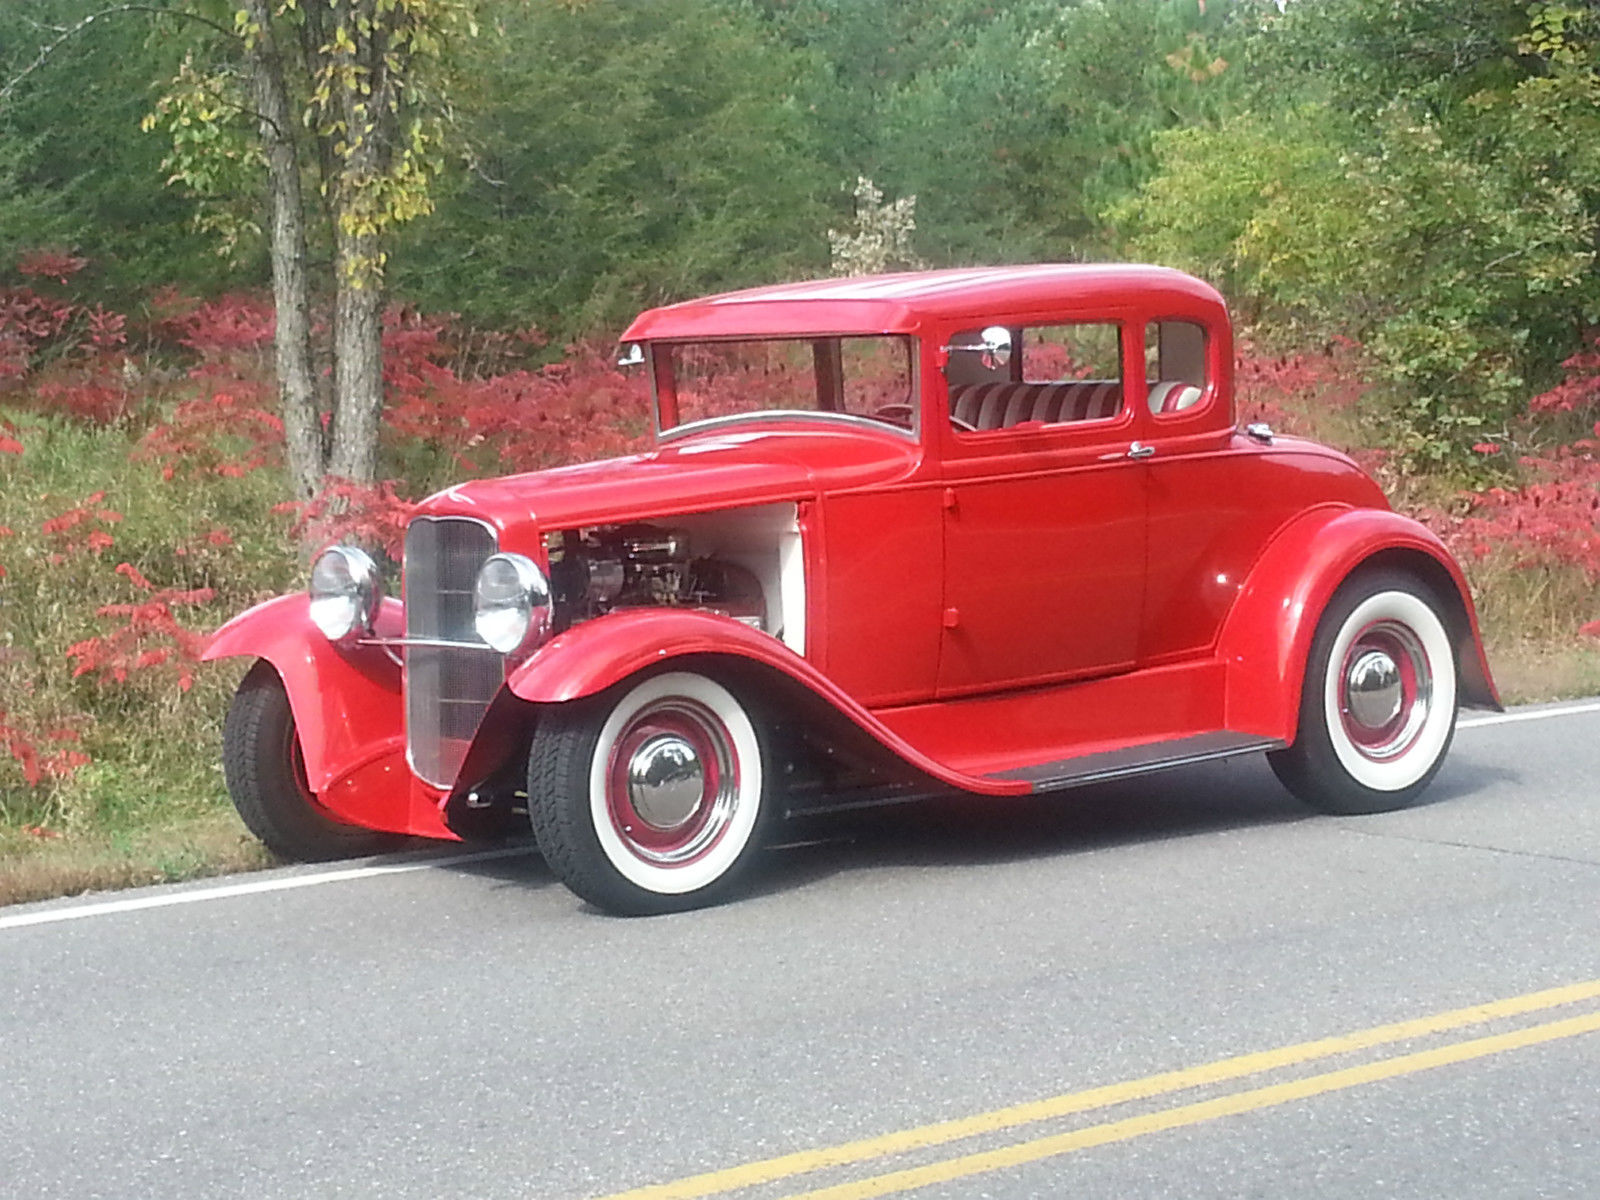 1931 ford model a 5 window coupe traditional hot rod henry ford steel. Black Bedroom Furniture Sets. Home Design Ideas